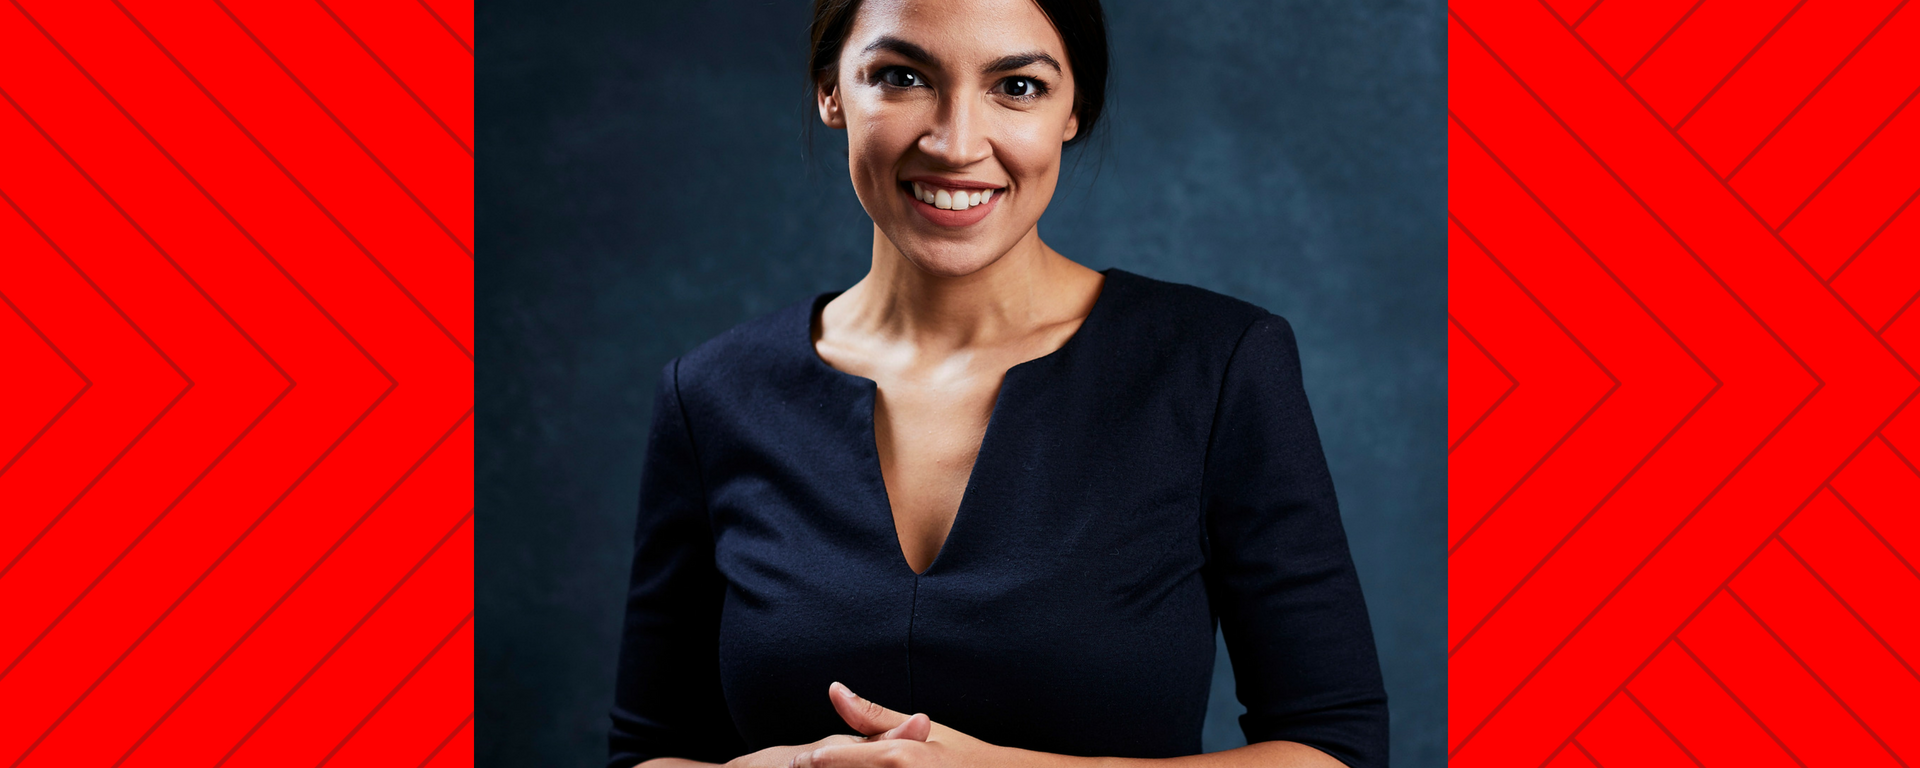 A portrait of Alexandria Ocasio-Cortez on red background.